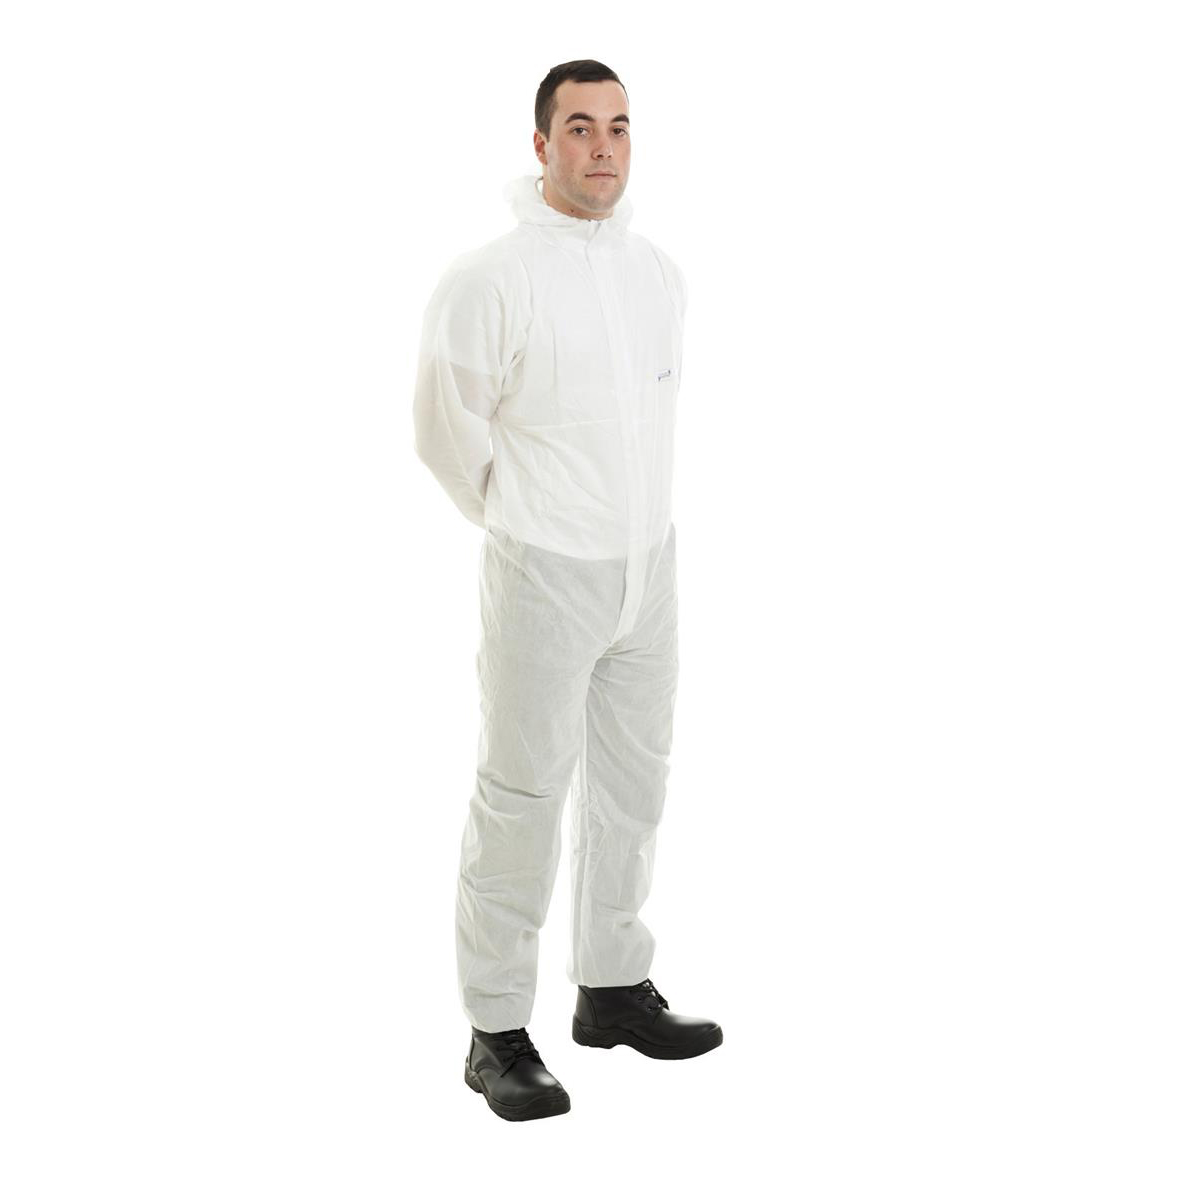 Supertouch Supertex SMS Coverall Type 5/6 Protection Large White Ref 17603 *Approx 3 Day Leadtime*